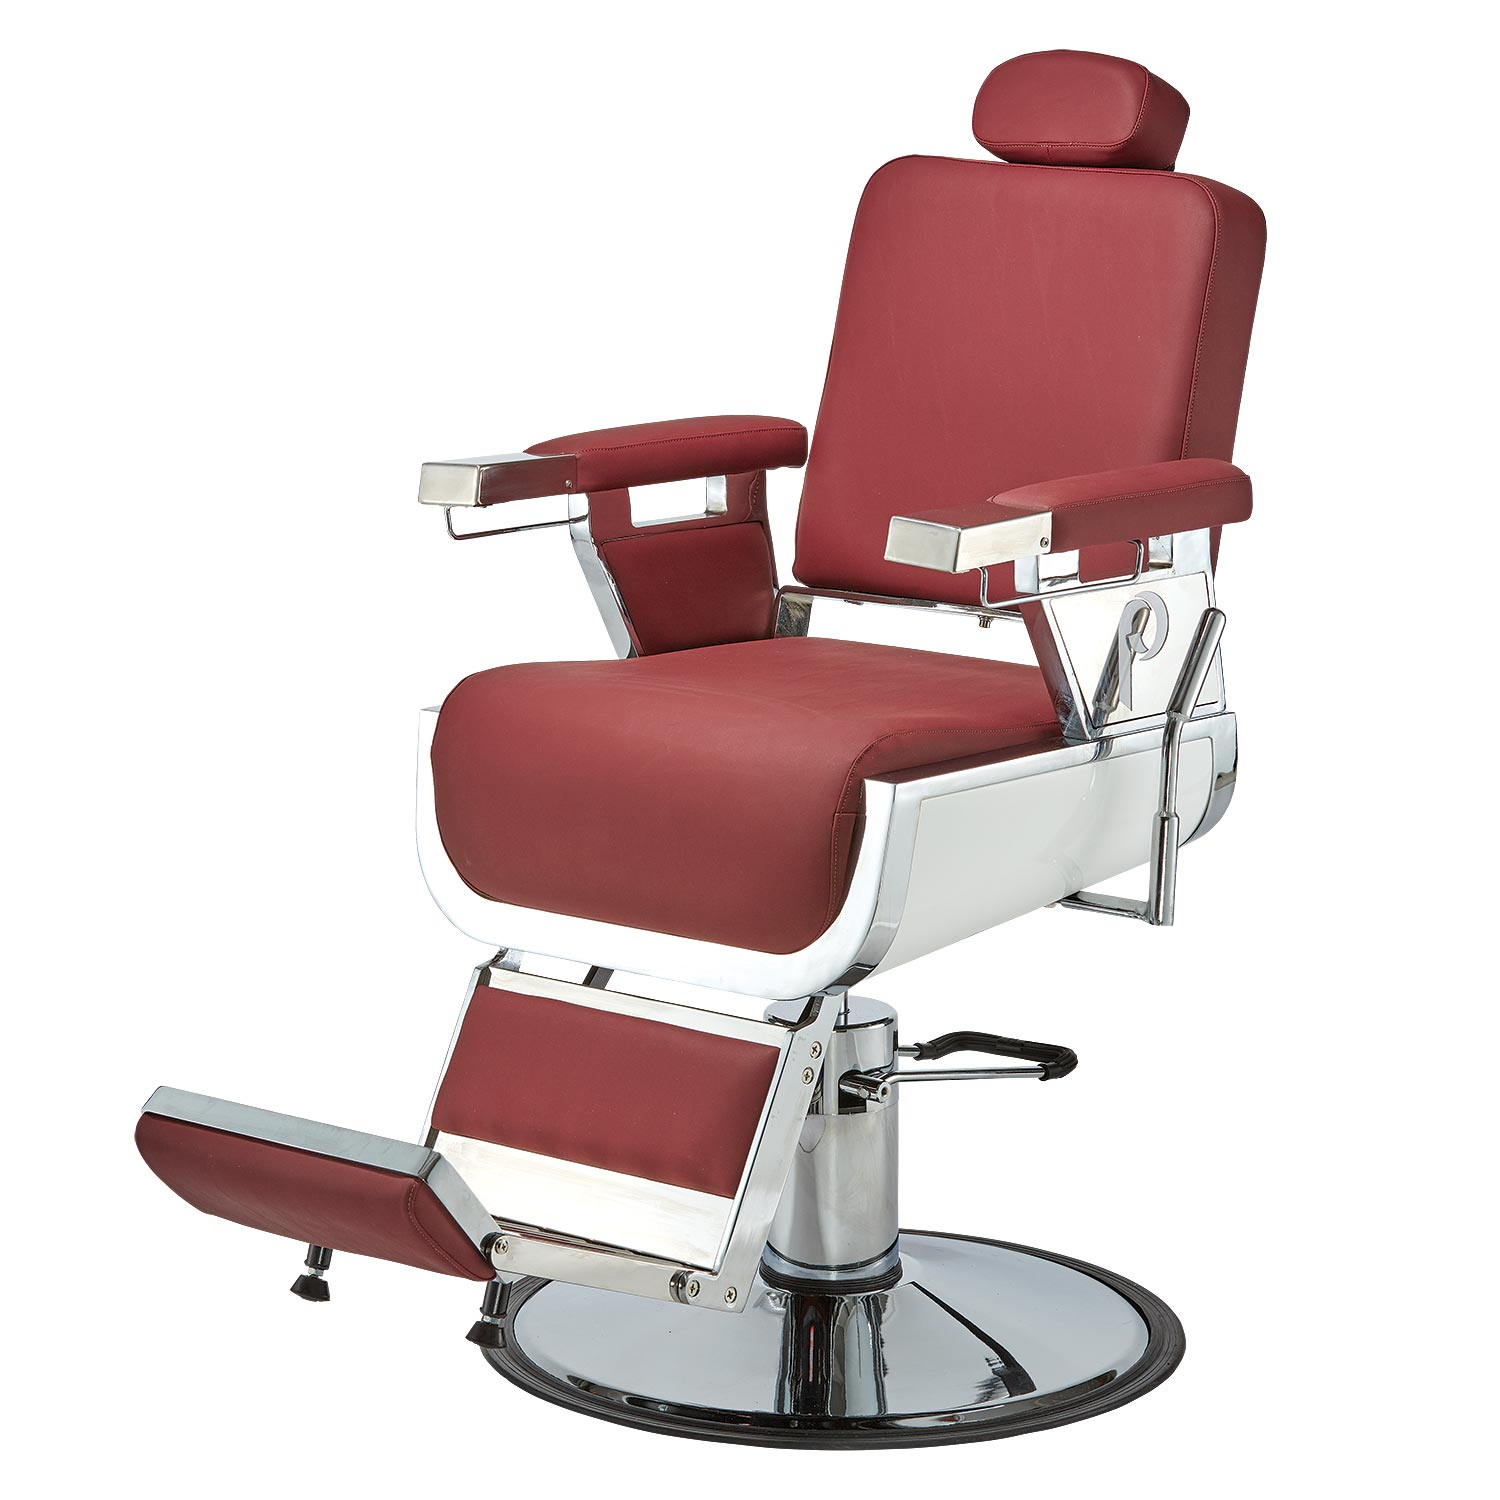 Pibbs 660 Grande Hydraulic Barber Chair  main product image